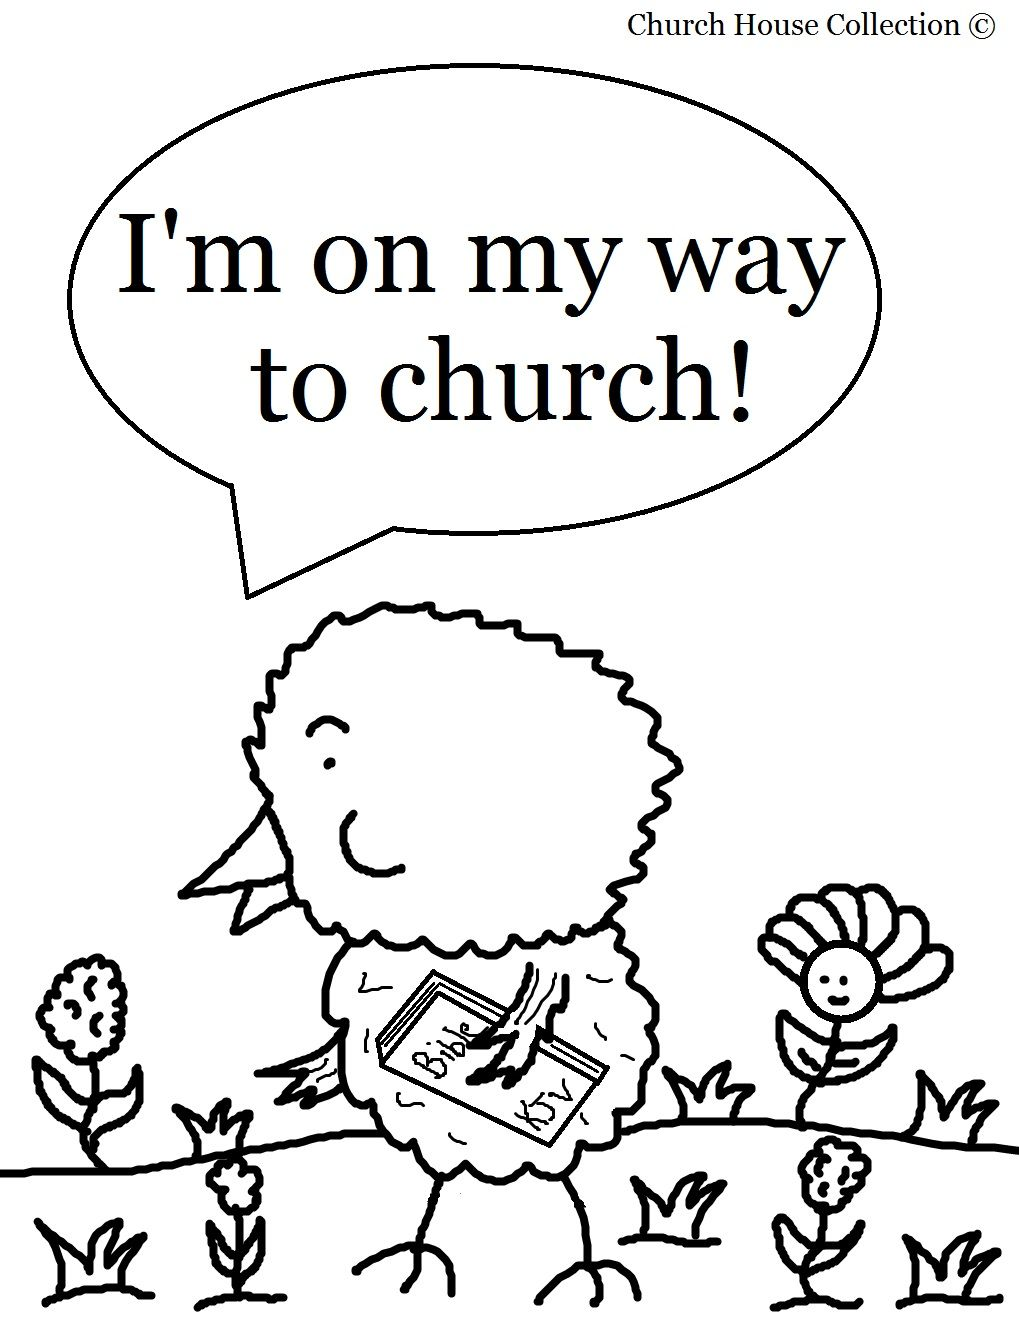 Easter Chick Coloring Page For Sunday School Kids Chick On His